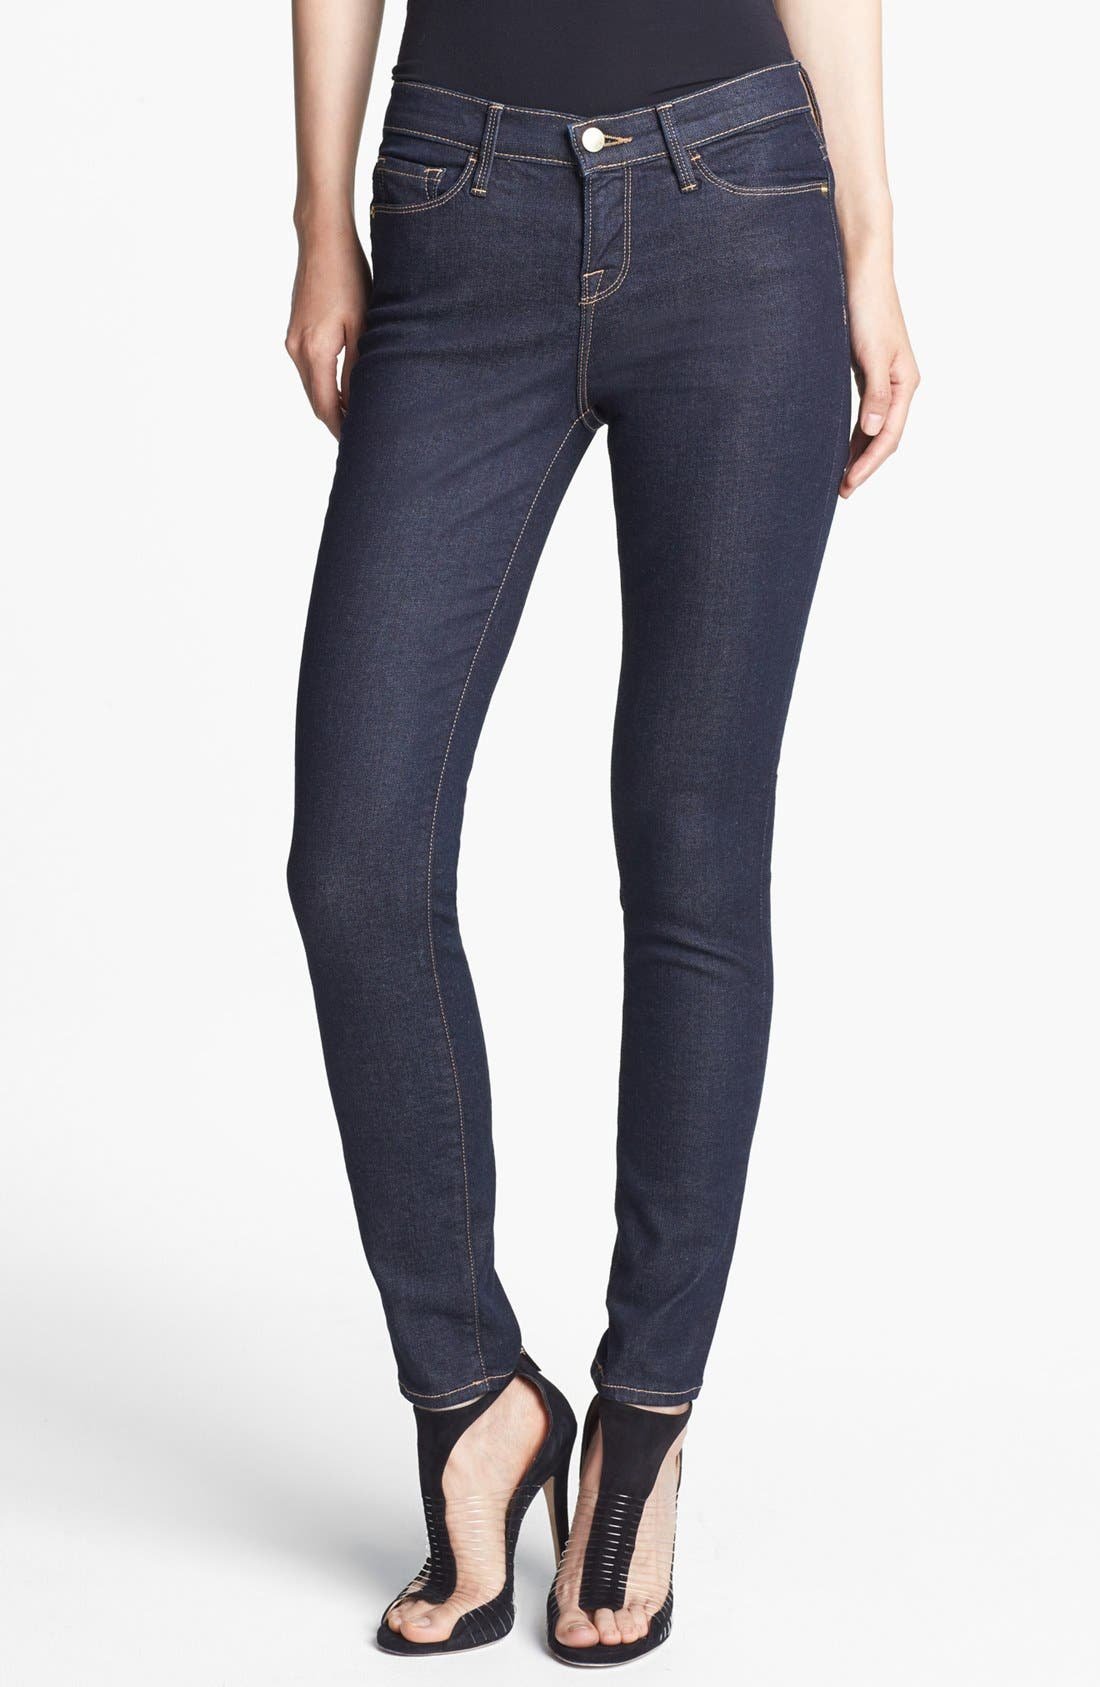 Alternate Image 1 Selected - Frame Denim 'Le Skinny de Jeanne' Jeans